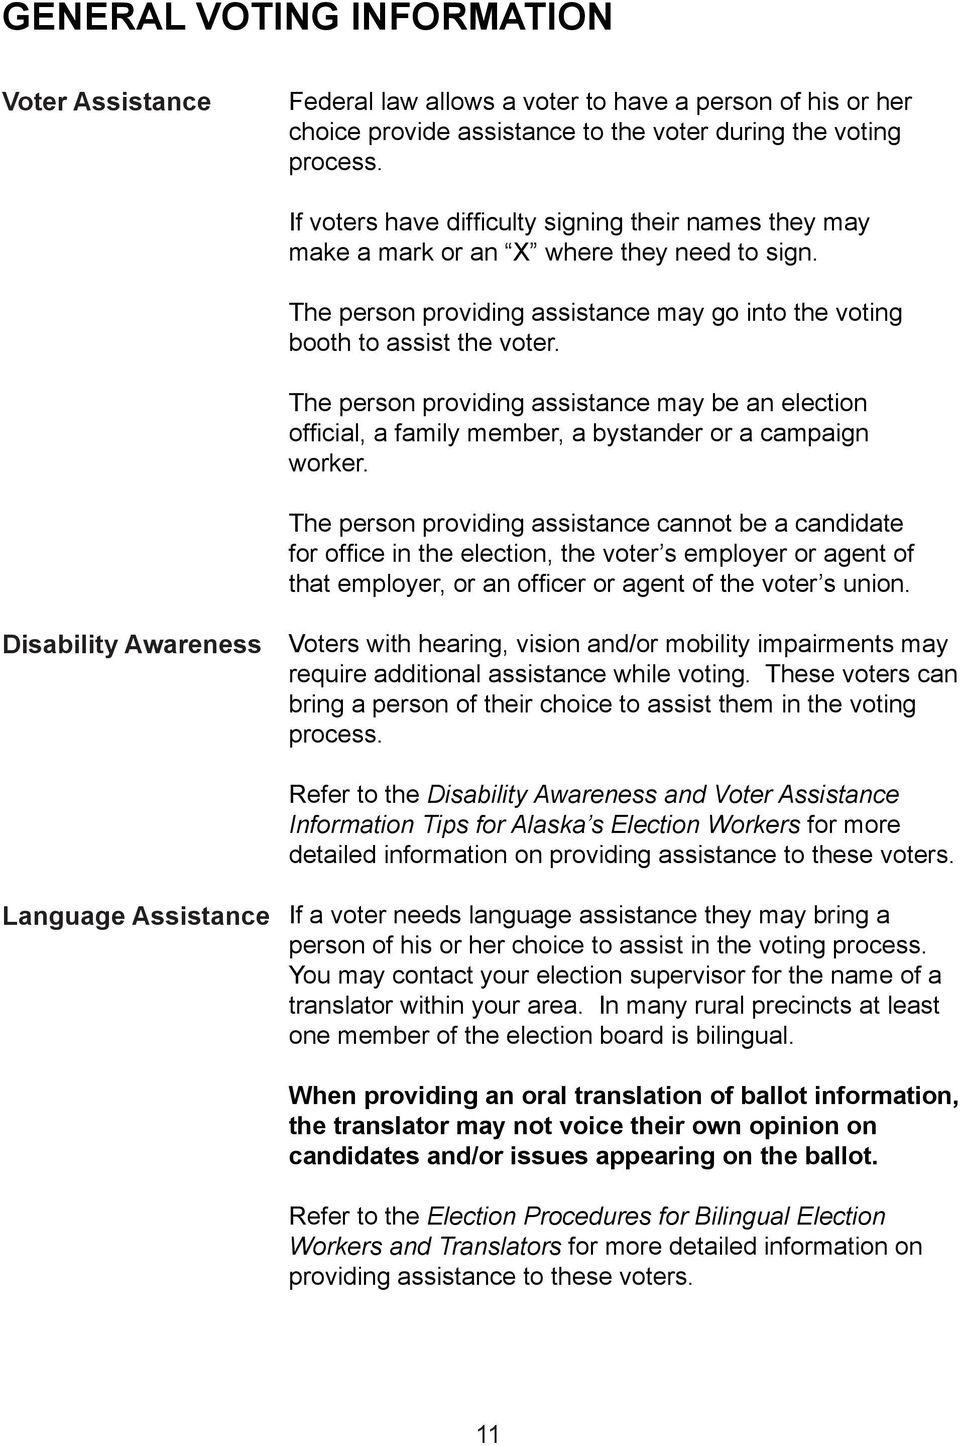 The person providing assistance may be an election official, a family member, a bystander or a campaign worker.